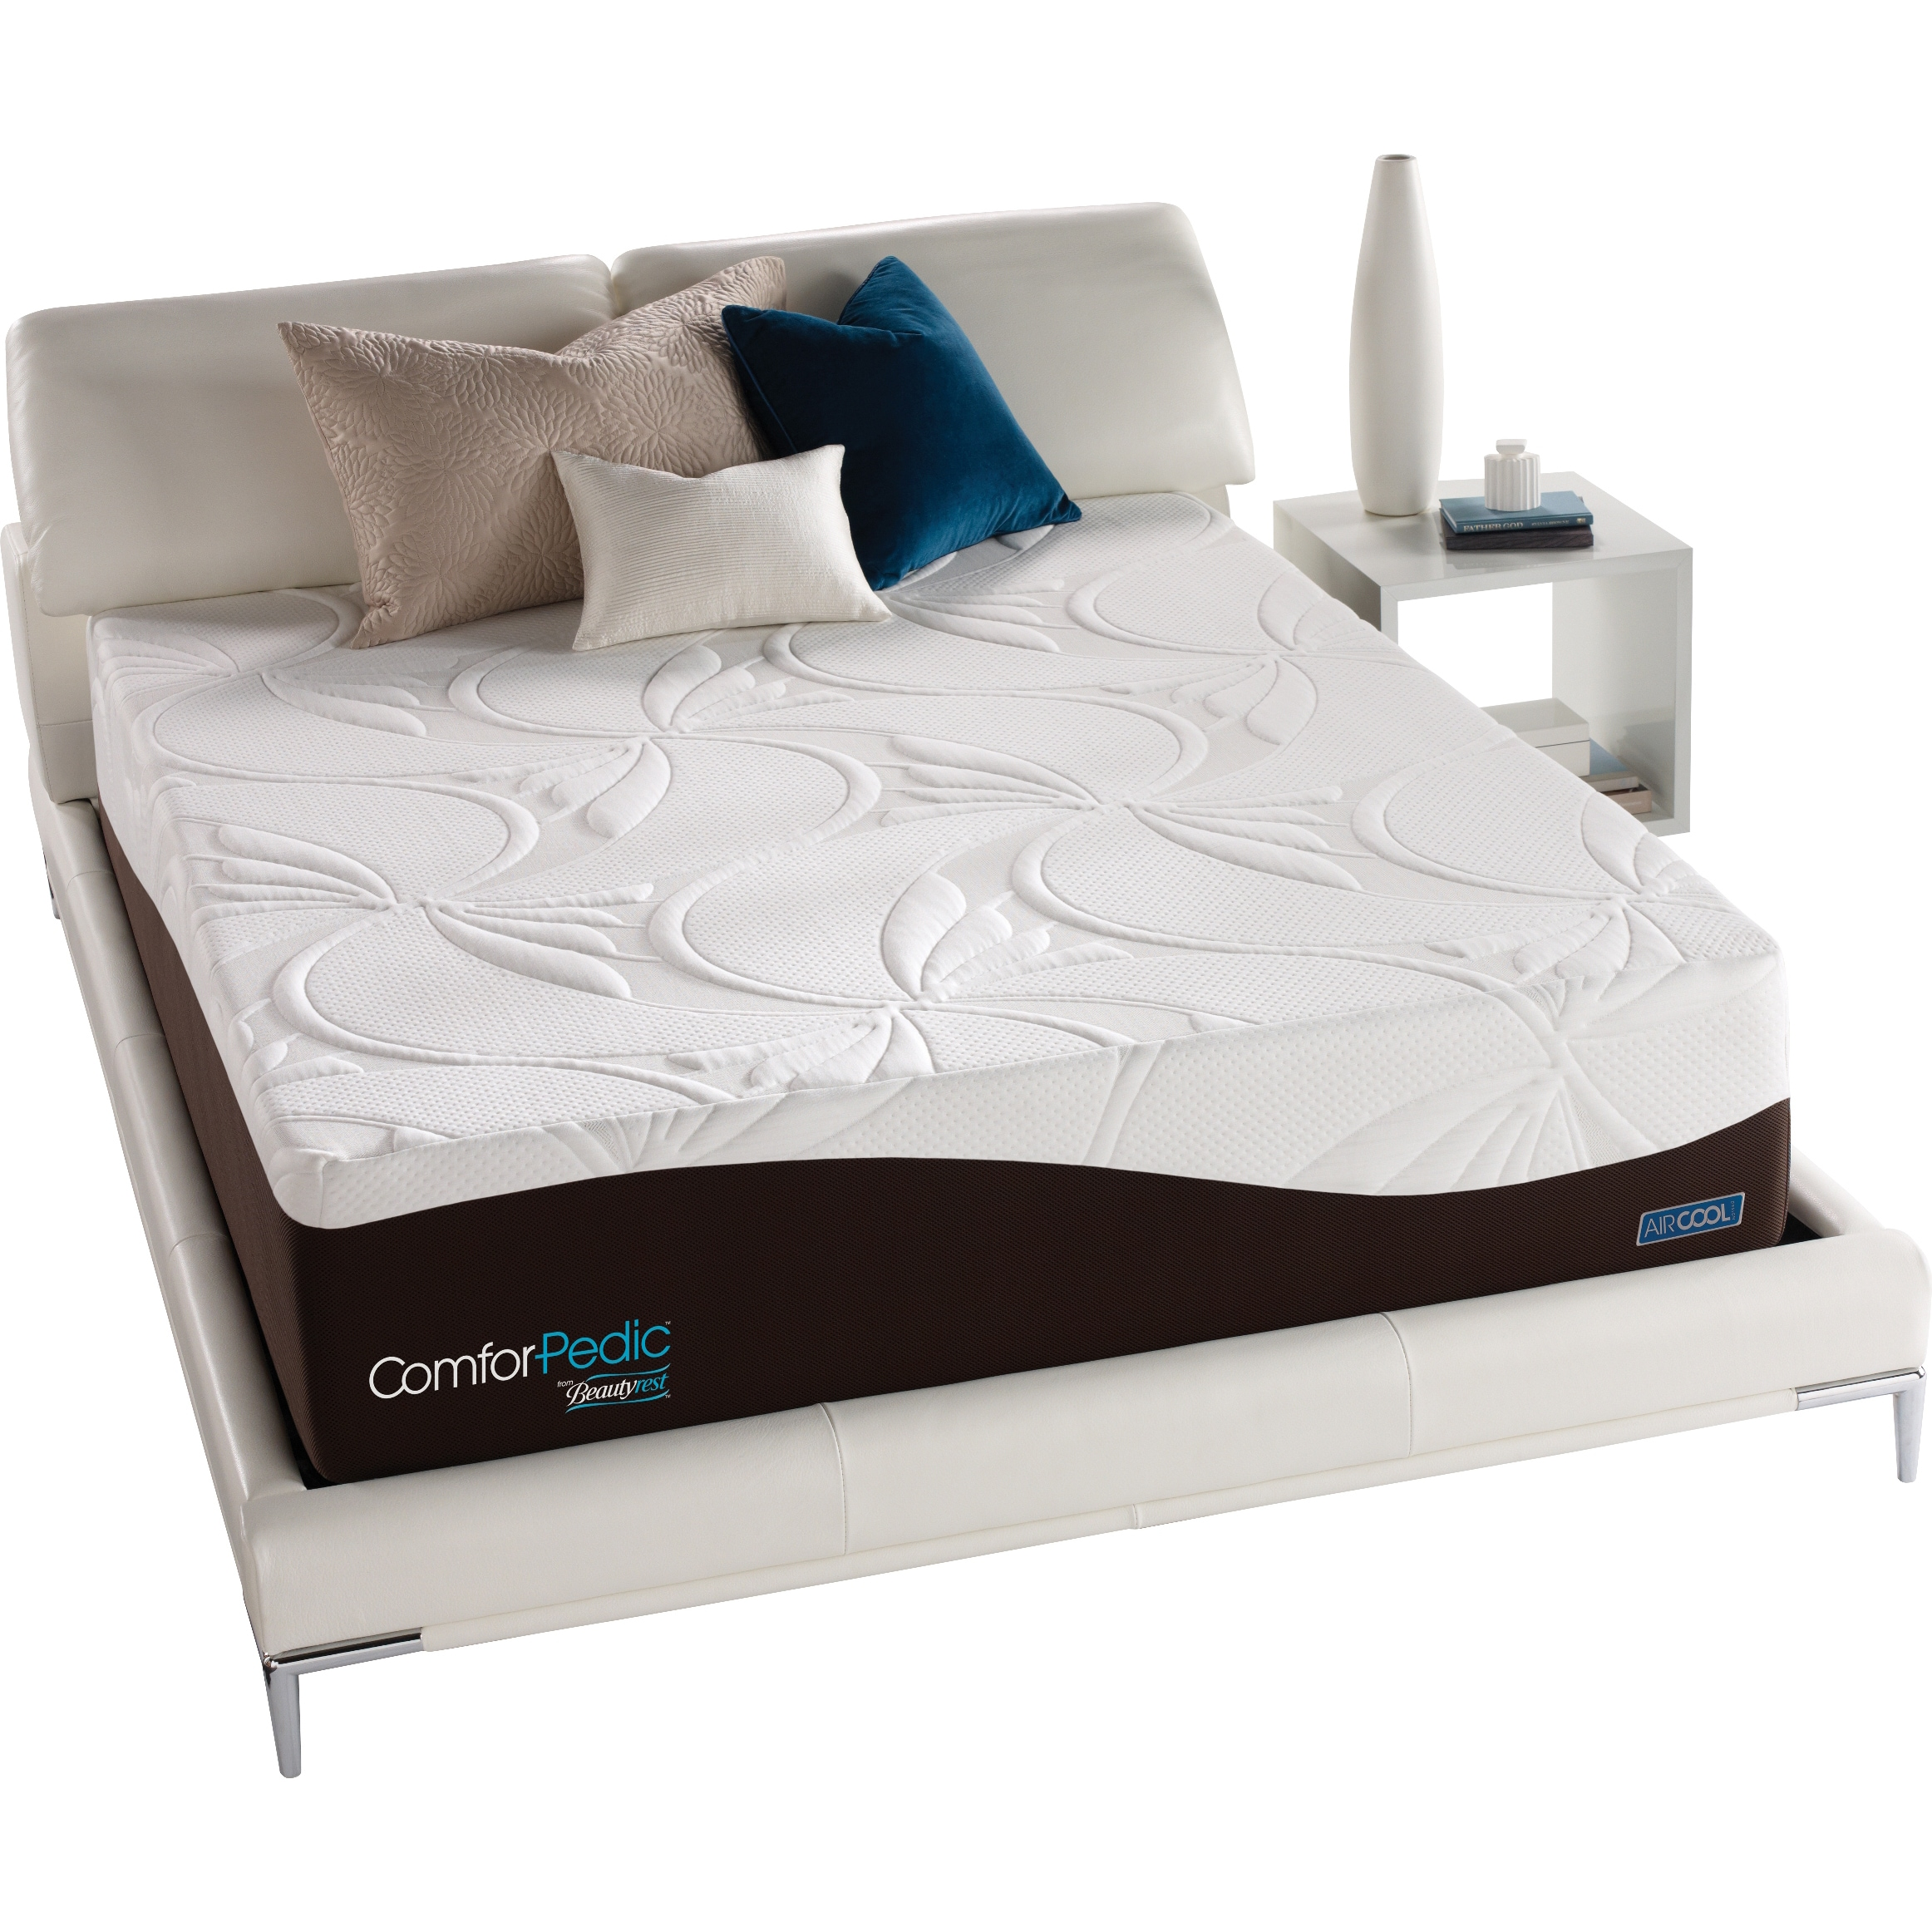 today comforter mattress free nourishing beautyrest comforpedic from set overstock product comfort garden home pedic plush shipping